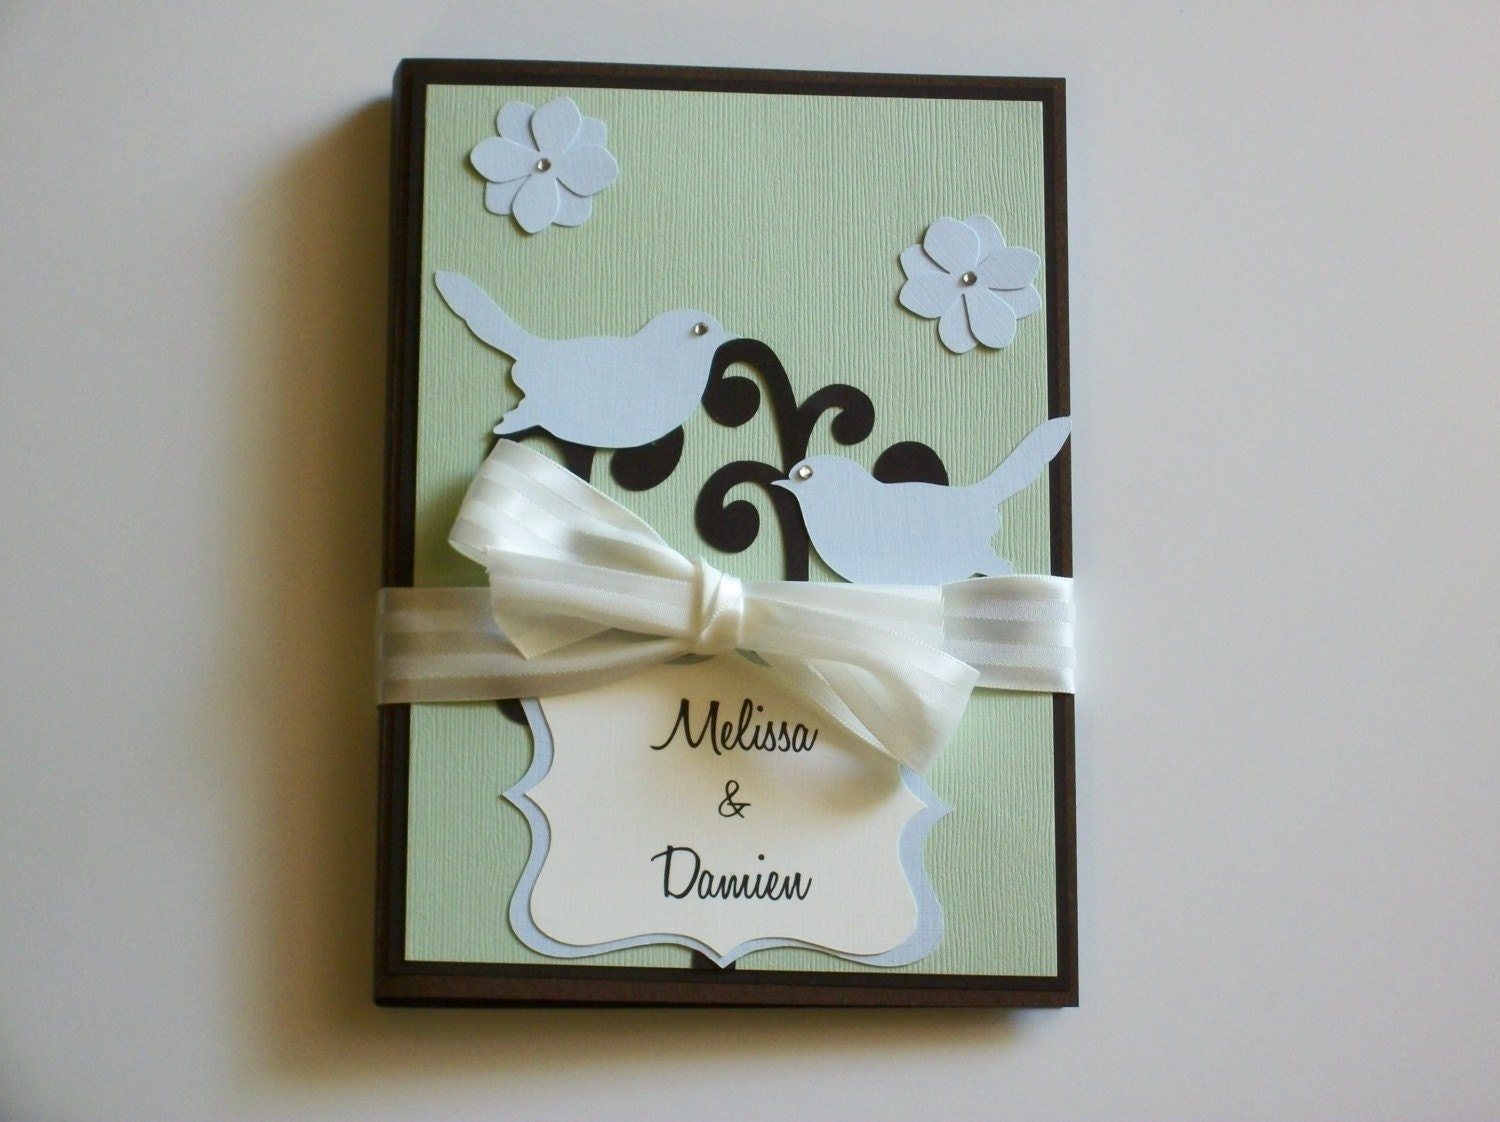 Gifts For Wedding Planning: Custom Wedding Planner And Organizer-perfect Engagement Gift